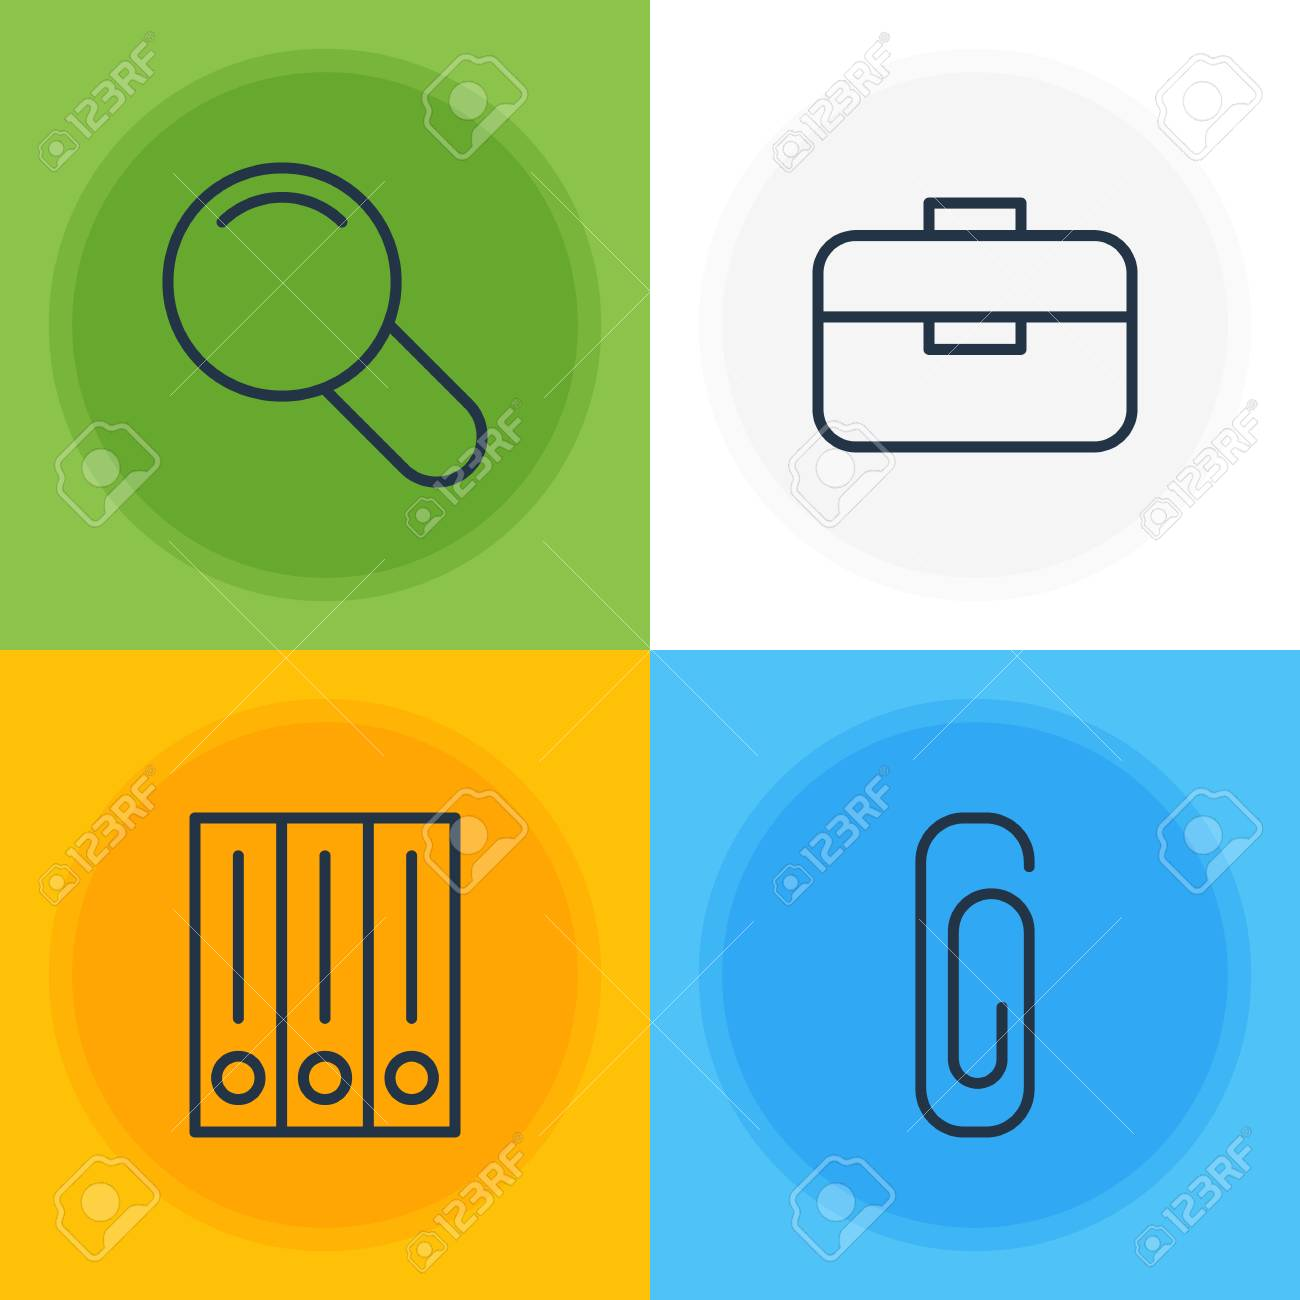 Vector Illustration Of 4 Stationery Icons. Editable Pack Of Portfolio, Paperclip, Zoom And Other Elements. Stock Illustration - 89139674